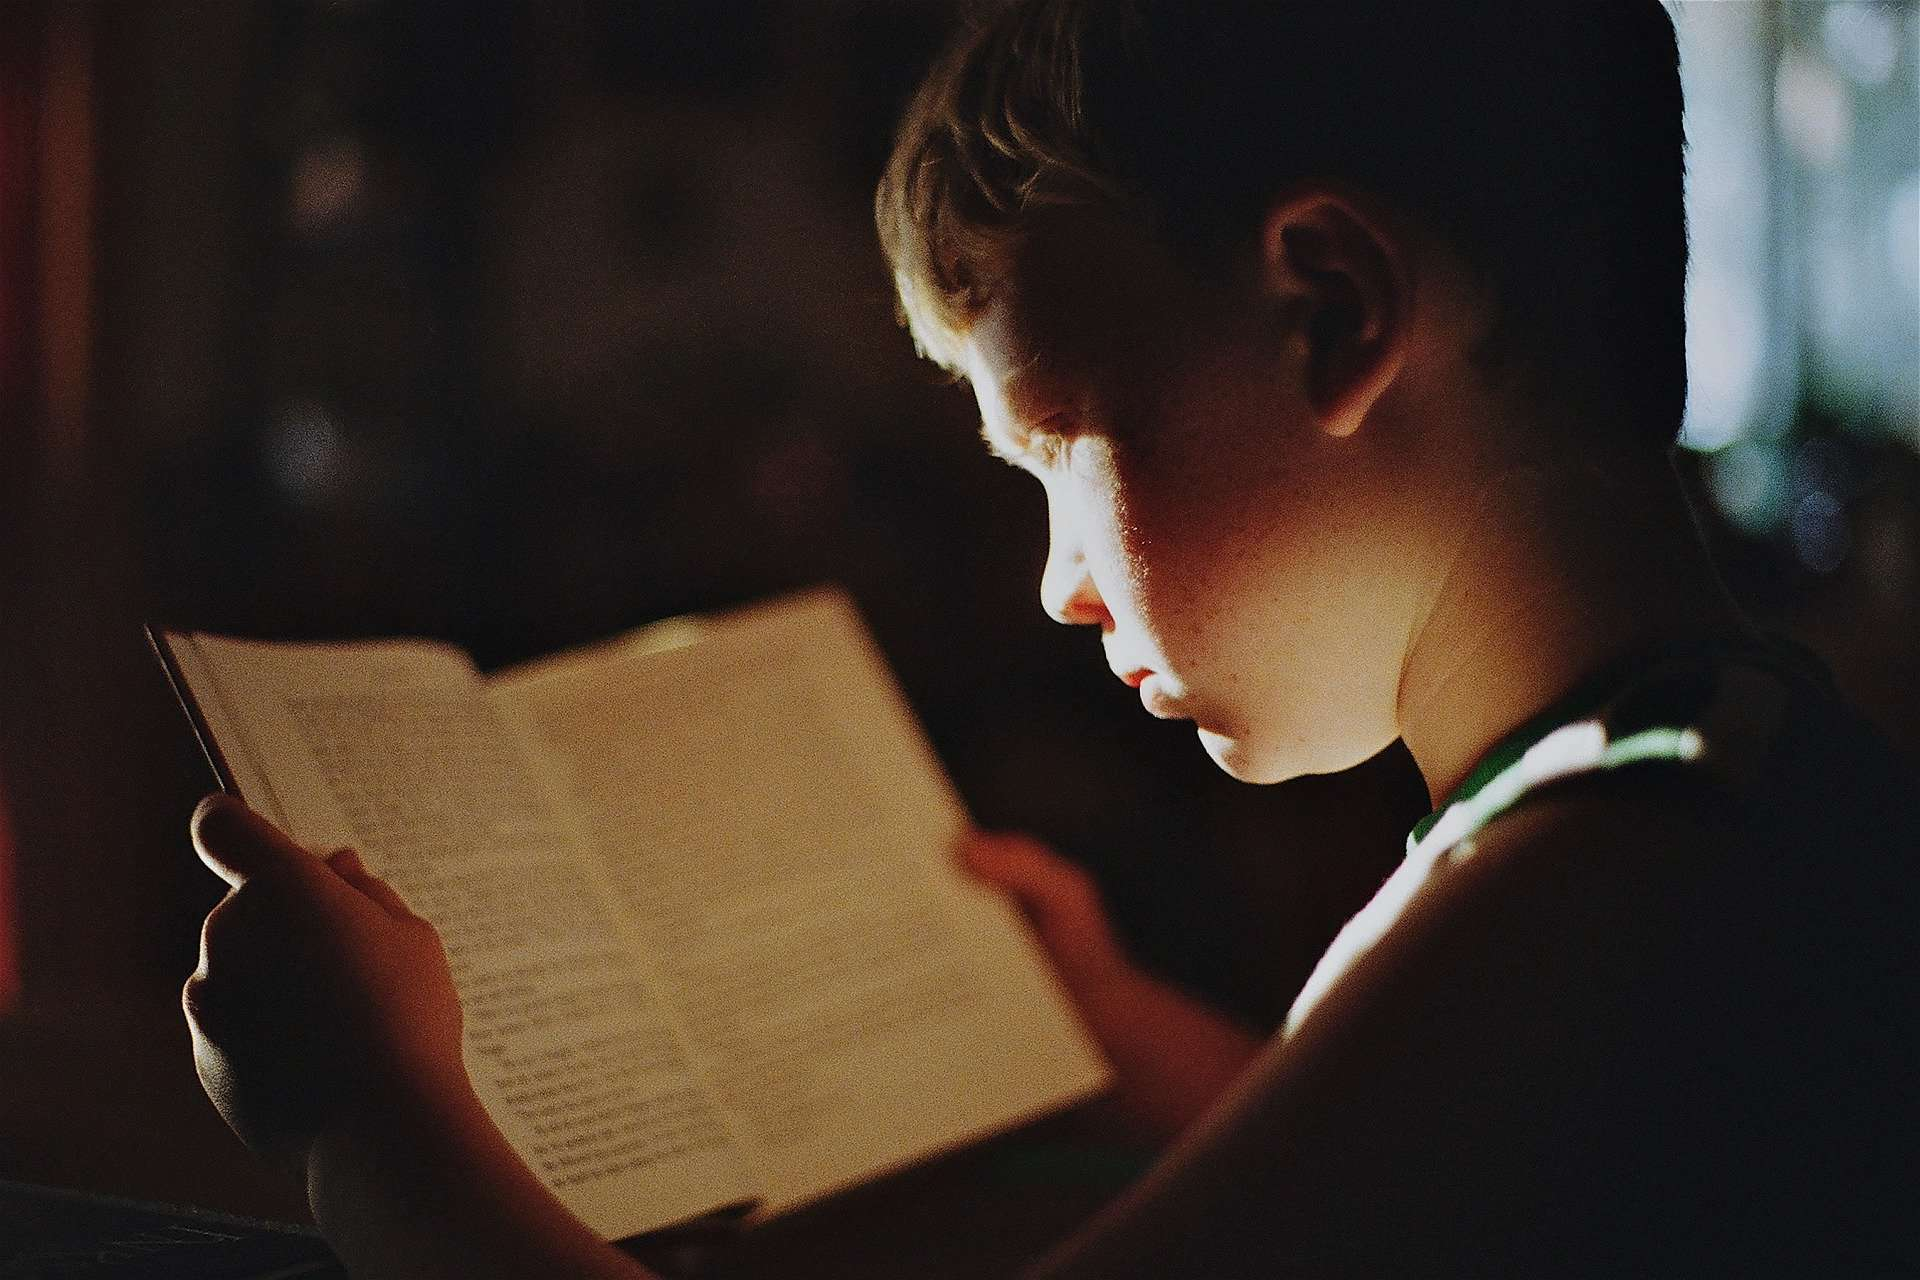 why are books important - they are the doorway to a broader life